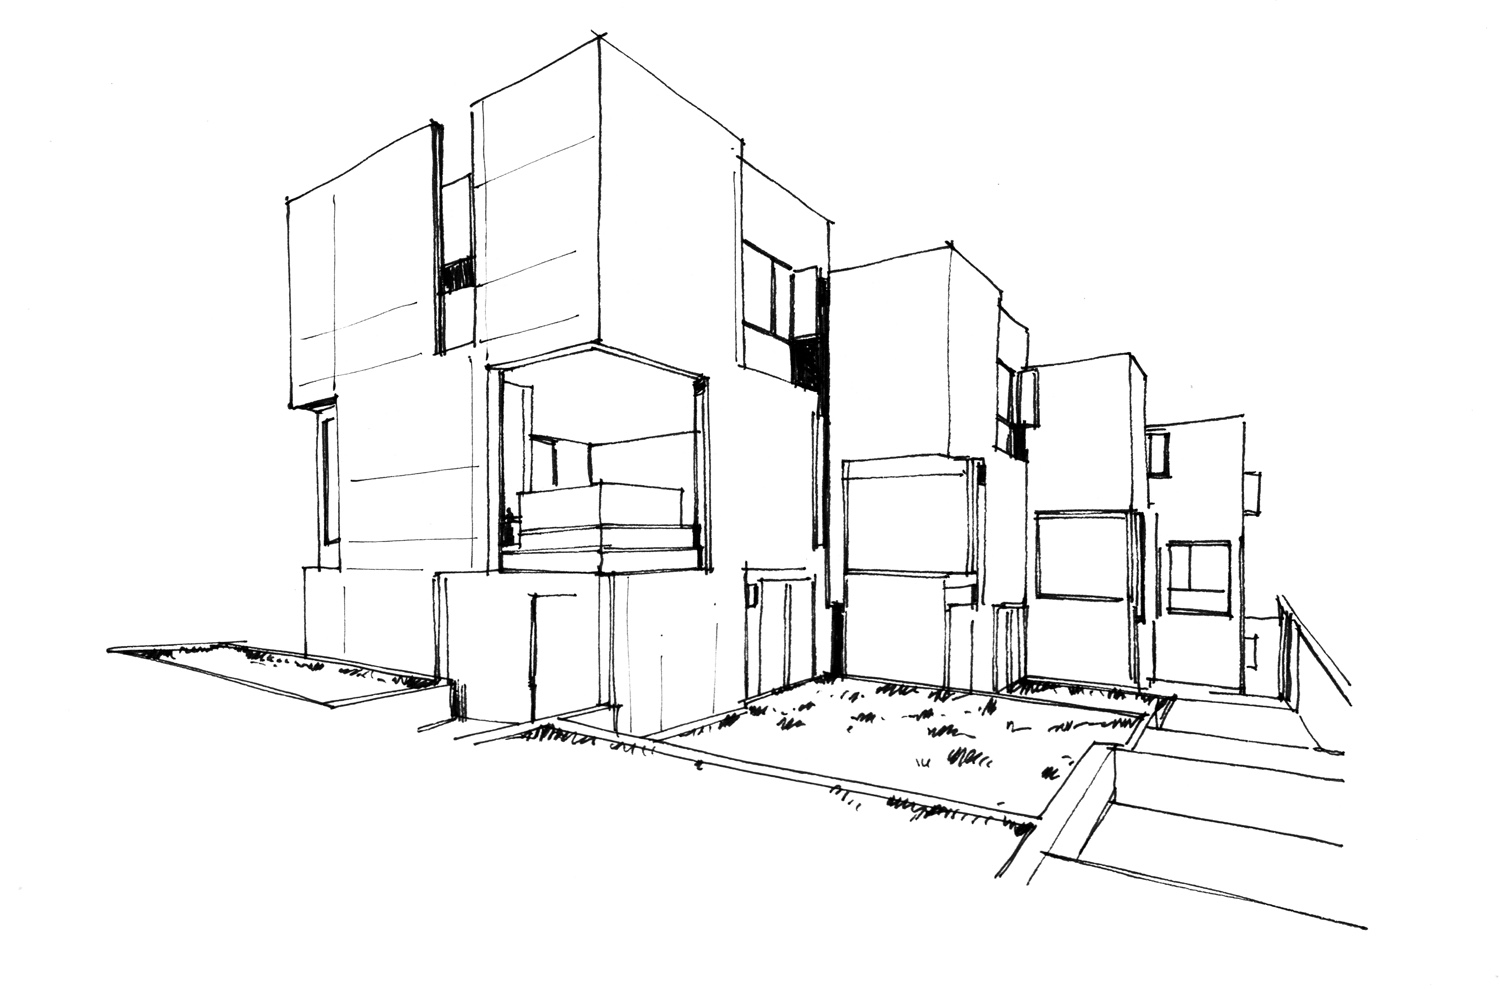 Silverlake Subdivision - Location / Los Angeles, CaliforniaArchitect / OBERMEYER ArchitectureSize / c.9,600 SFStatus / In Progress